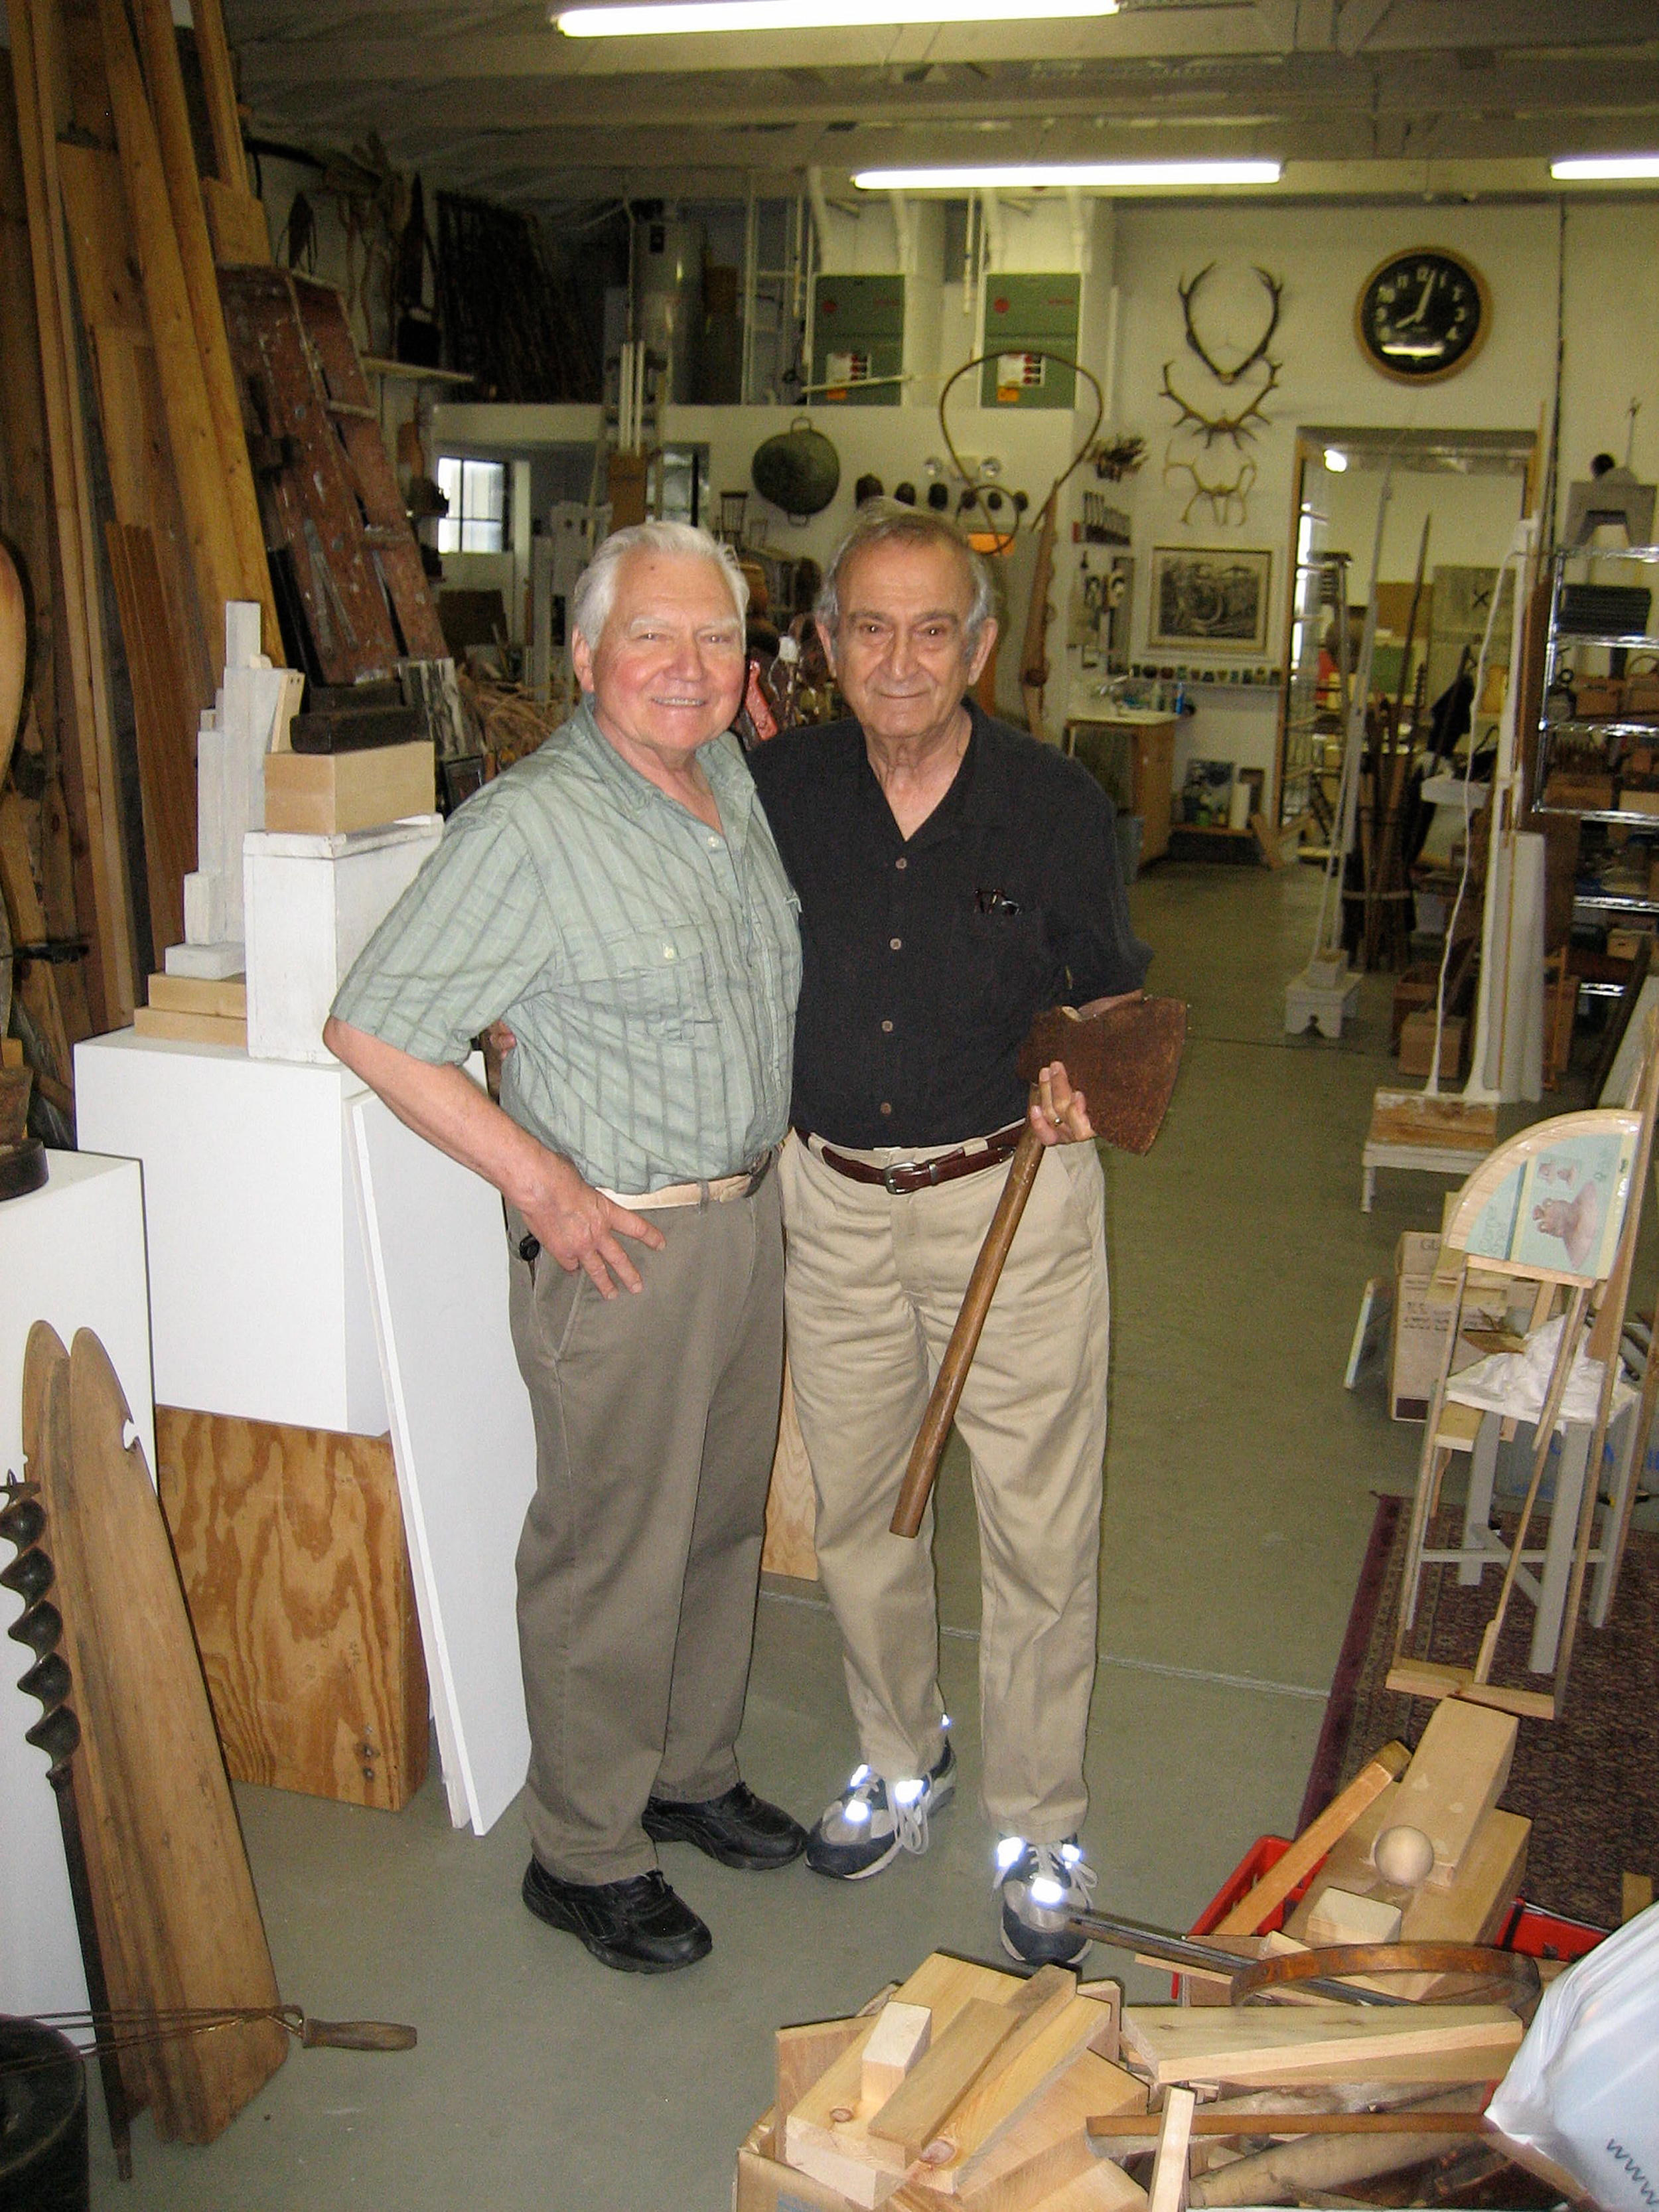 JU with his longtime and dear, close friend, colleague and admired mentor, Varujan Boghosian at JU's studio, 60 Croade St., Warren RI. July 22, 2008